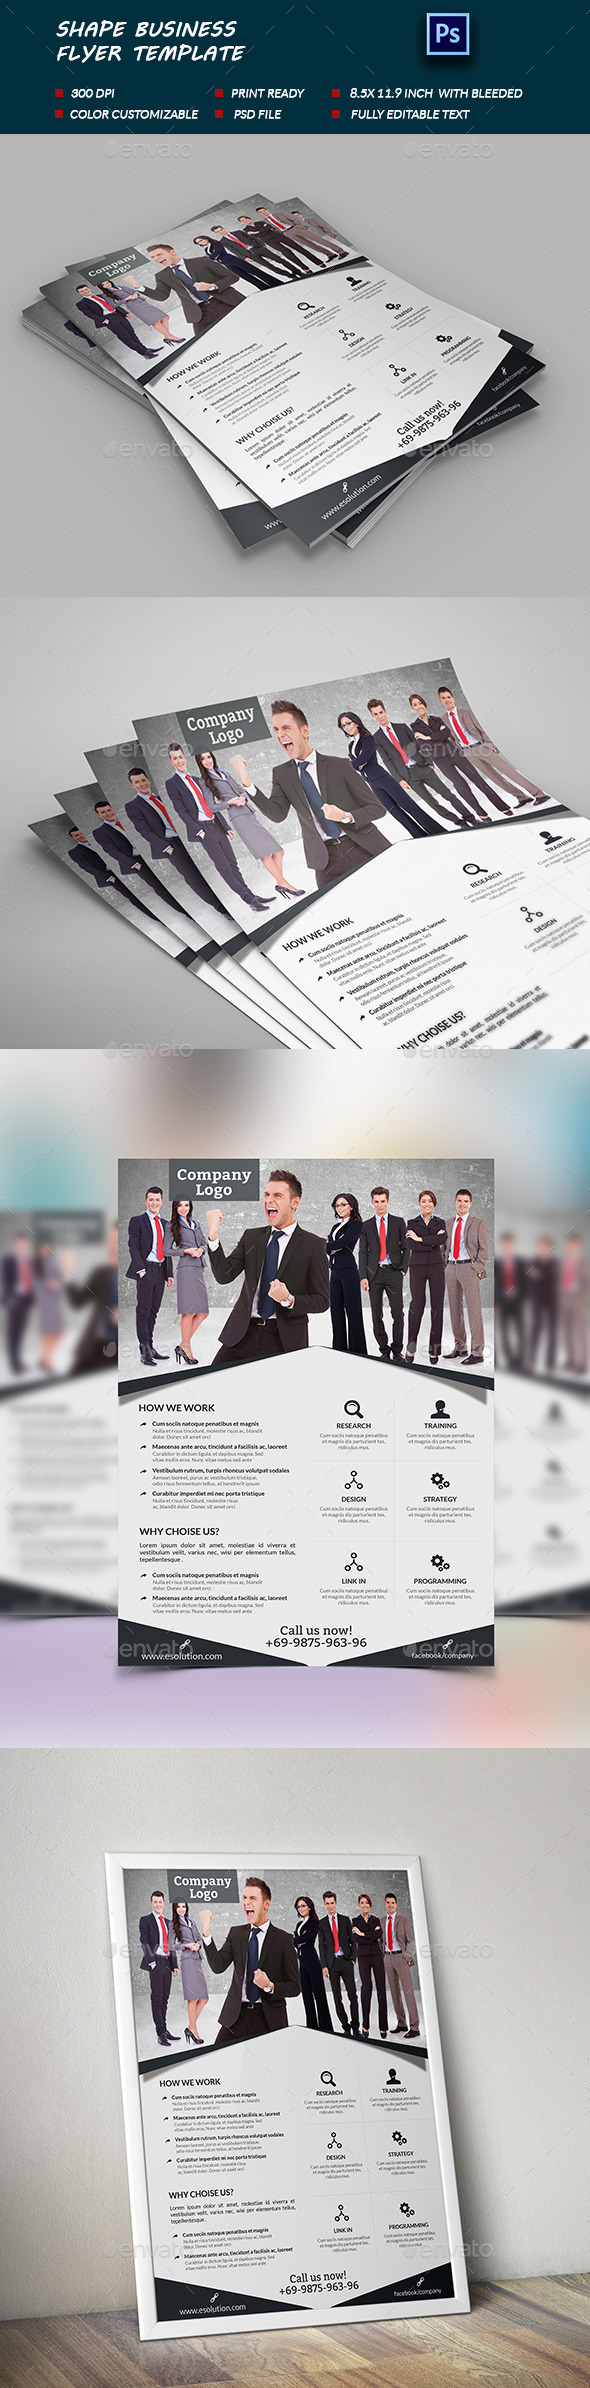 Shape business Flyer Template - Flyers Print Templates